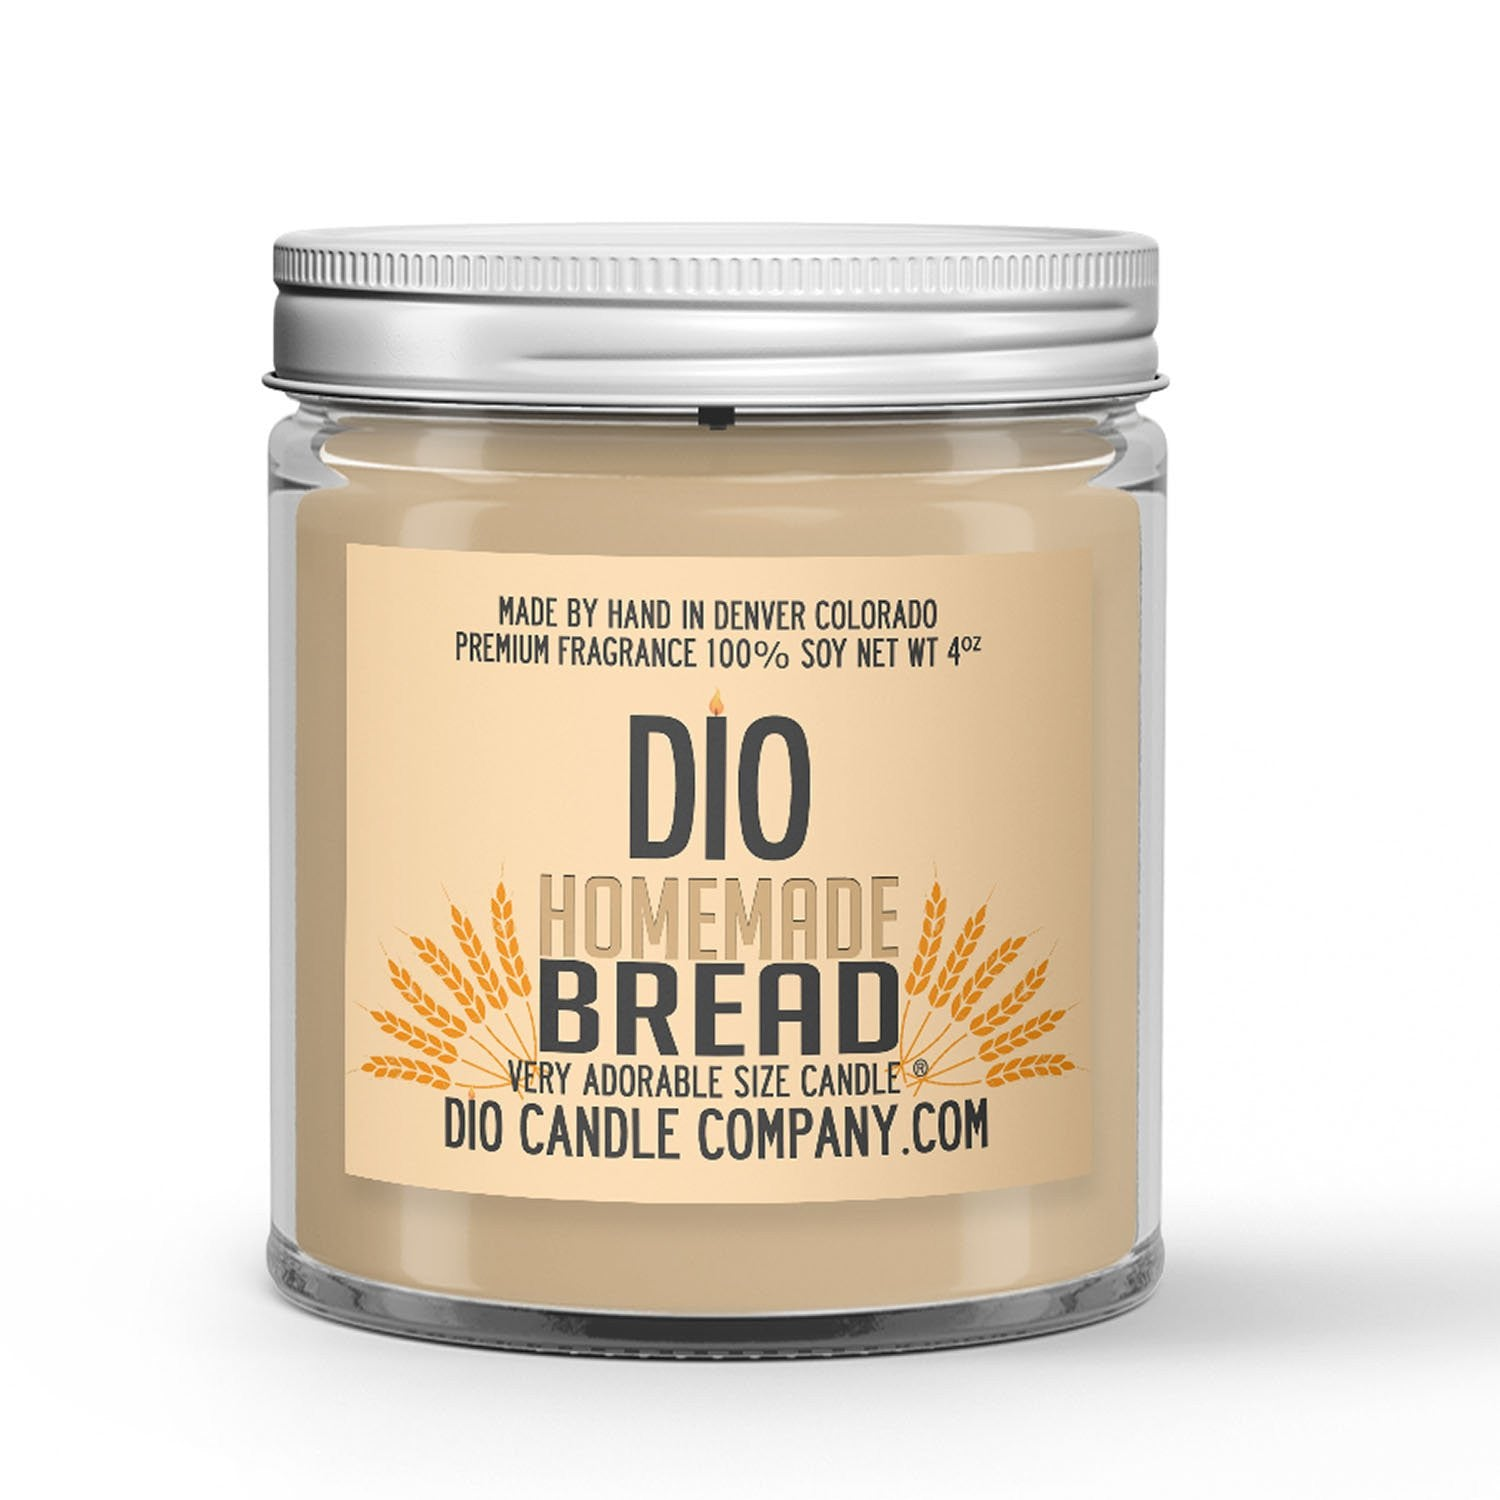 Freshly Baked Crusty Loaf Scented - Homemade Bread Candle - 4 oz - Dio Candle Company